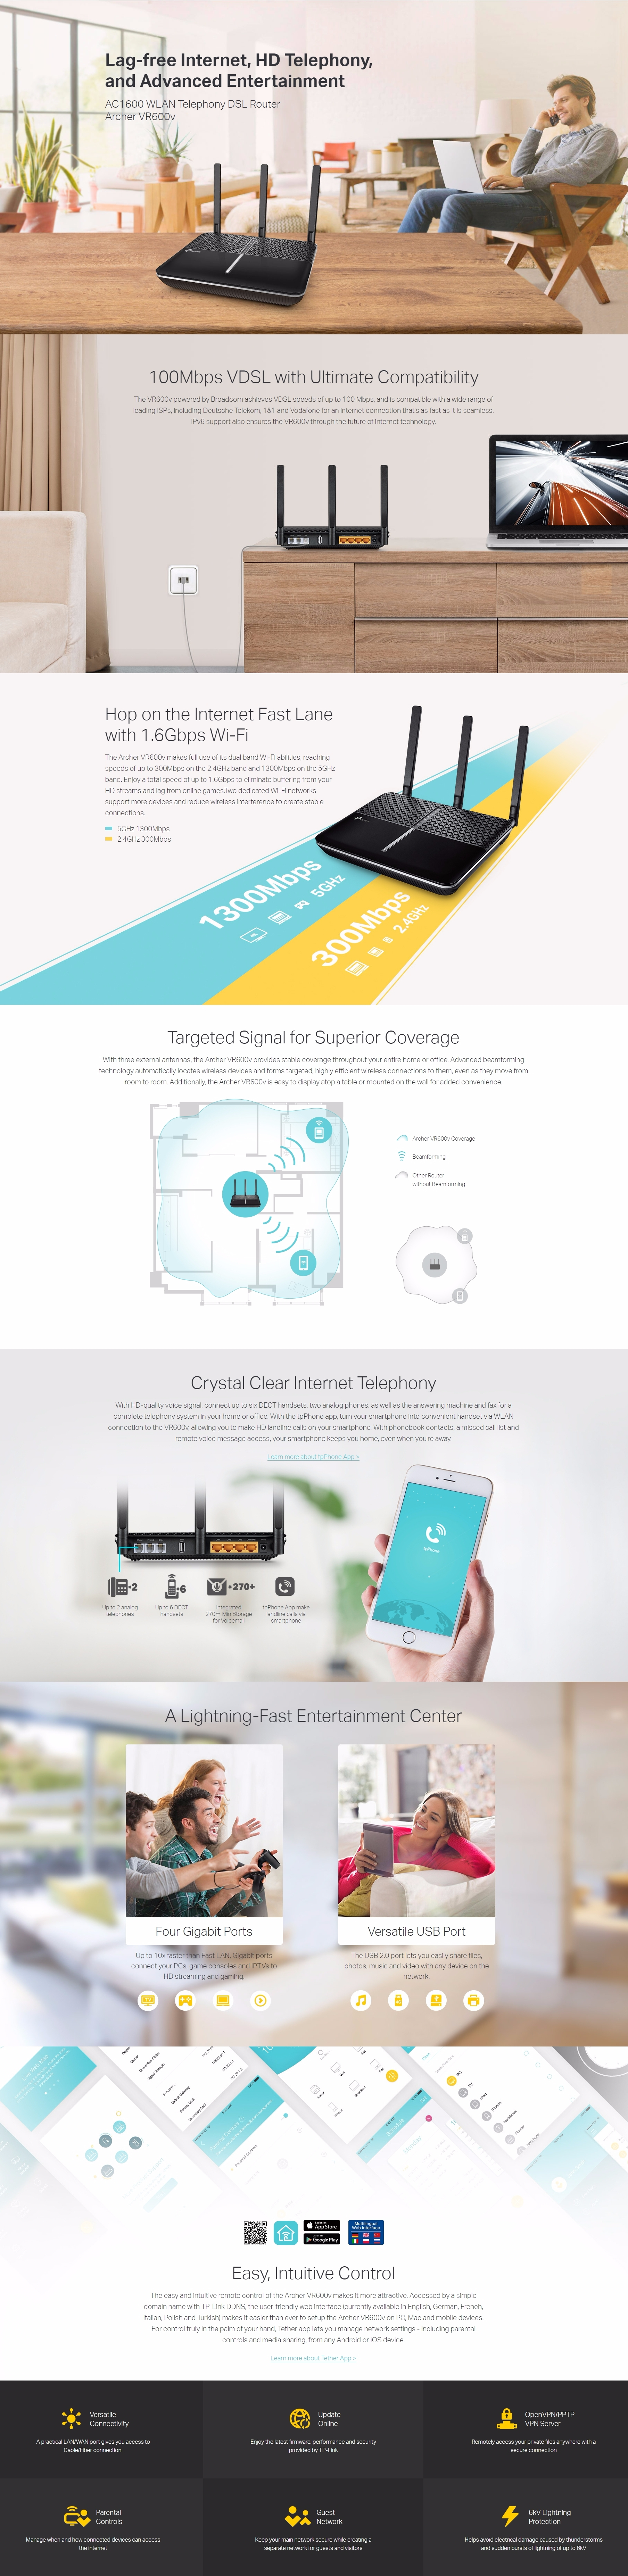 A large marketing image providing additional information about the product TP-LINK Archer VR600v AC1600 Wireless Dual Band VoIP VDSL/ADSL Modem Router - Additional alt info not provided